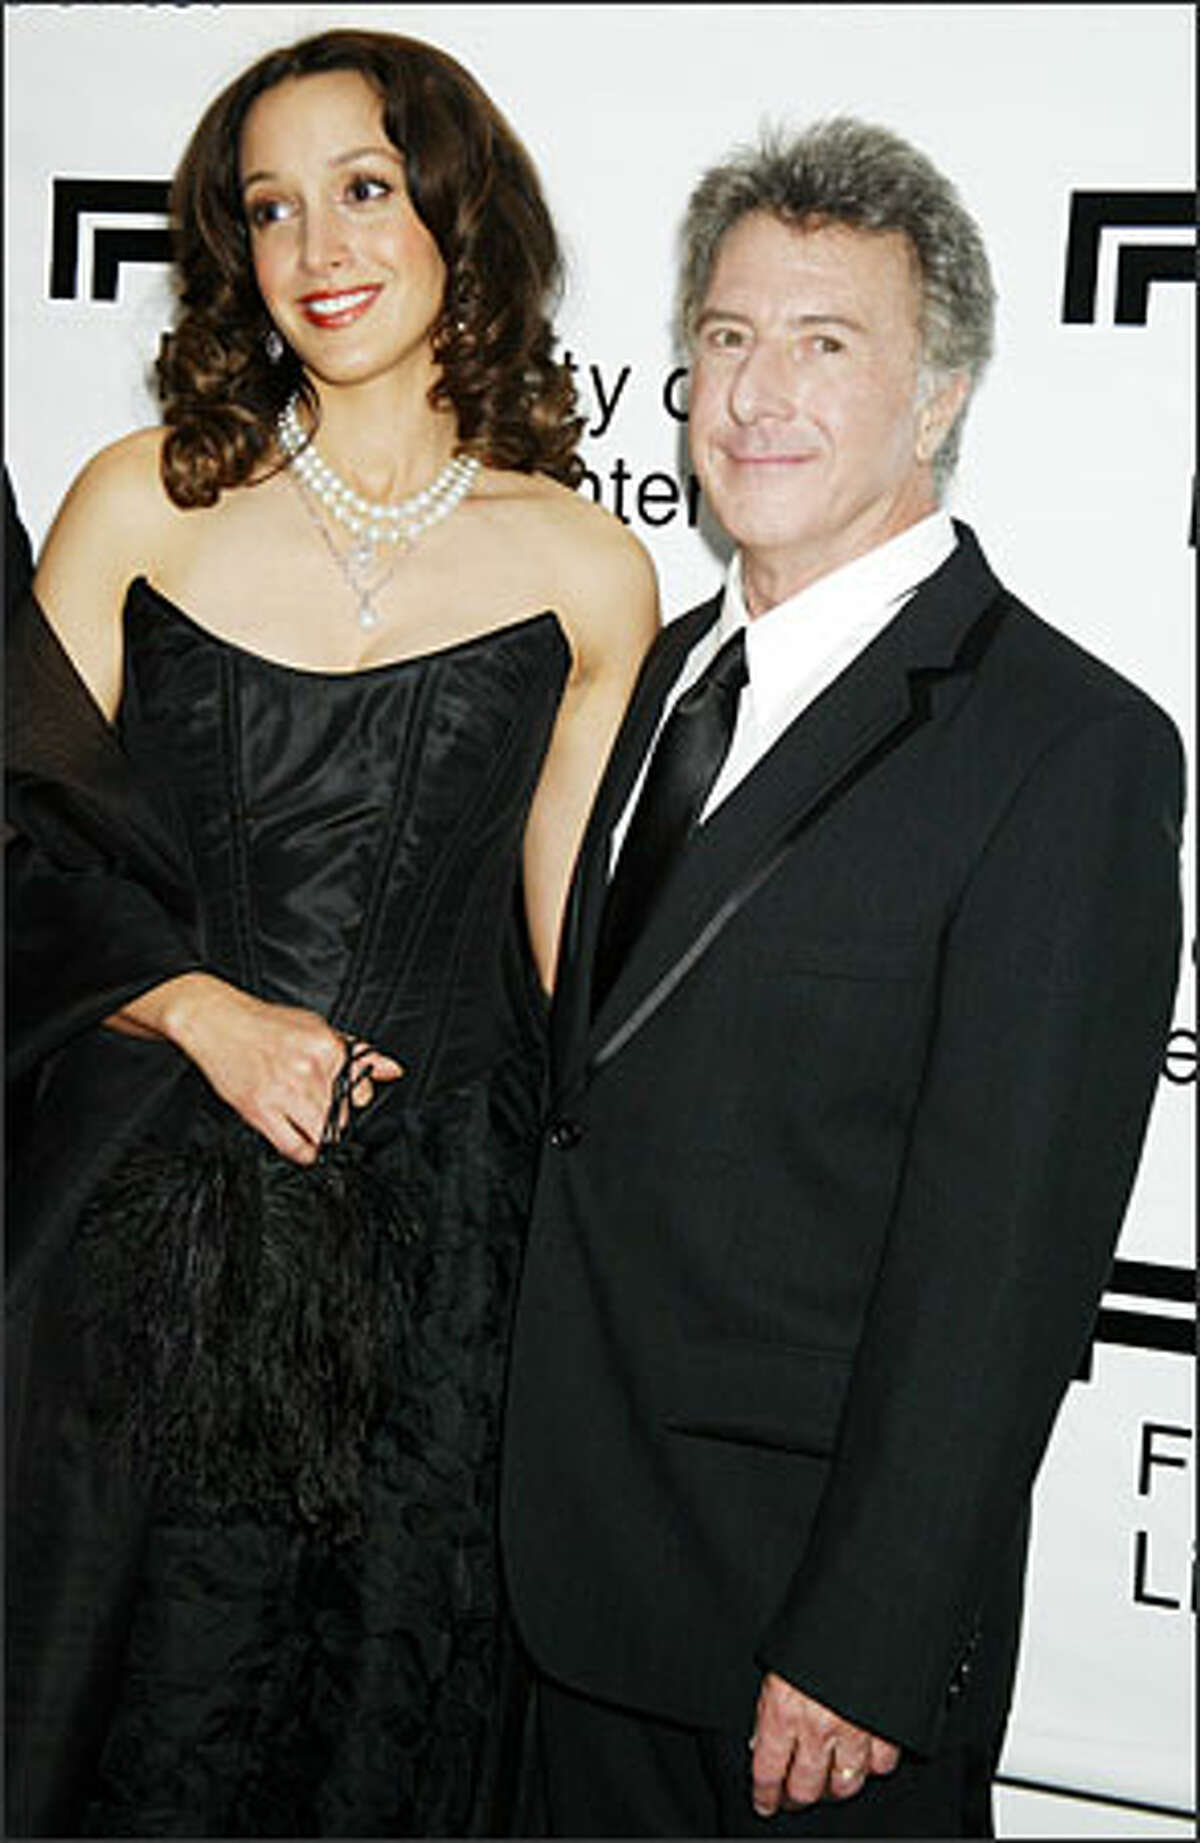 Jennifer Beals and Dustin Hoffman attended the annual gala of the Film Society of Lincoln Center this week. Hoffman was honored for a body of work that includes